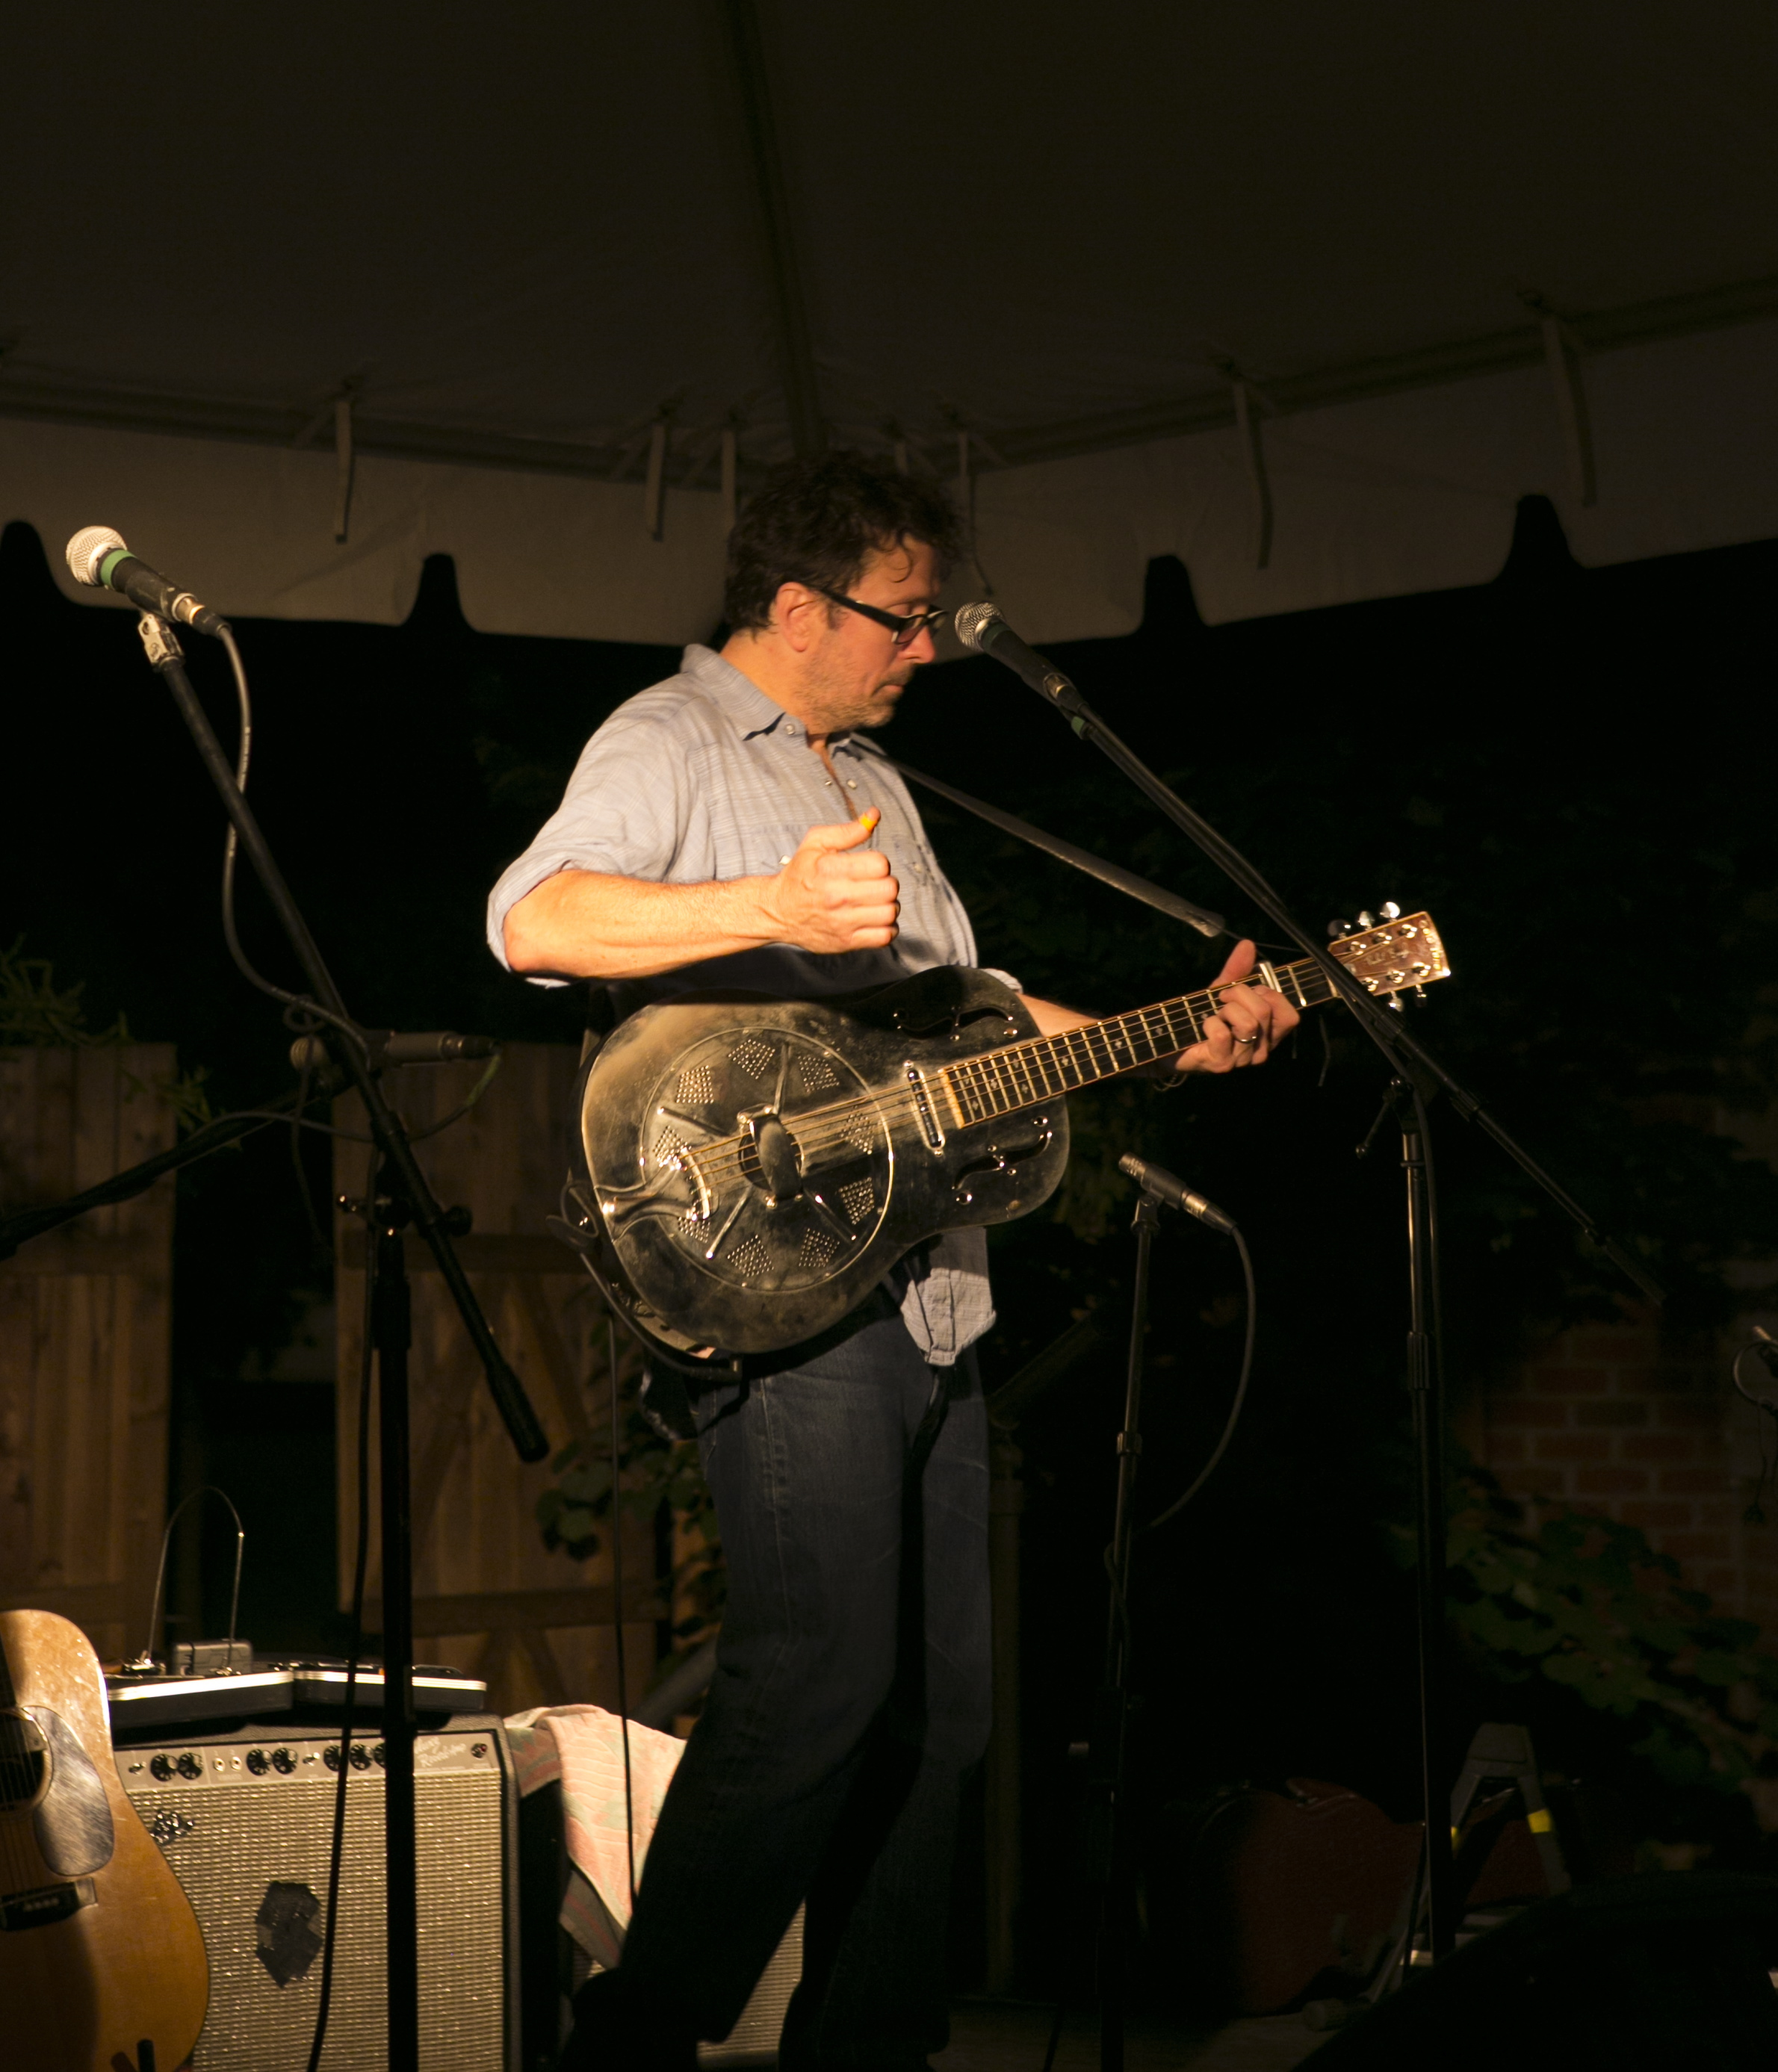 Will rockin' the resonator solo, 2012. Photo by McTell Brothers.